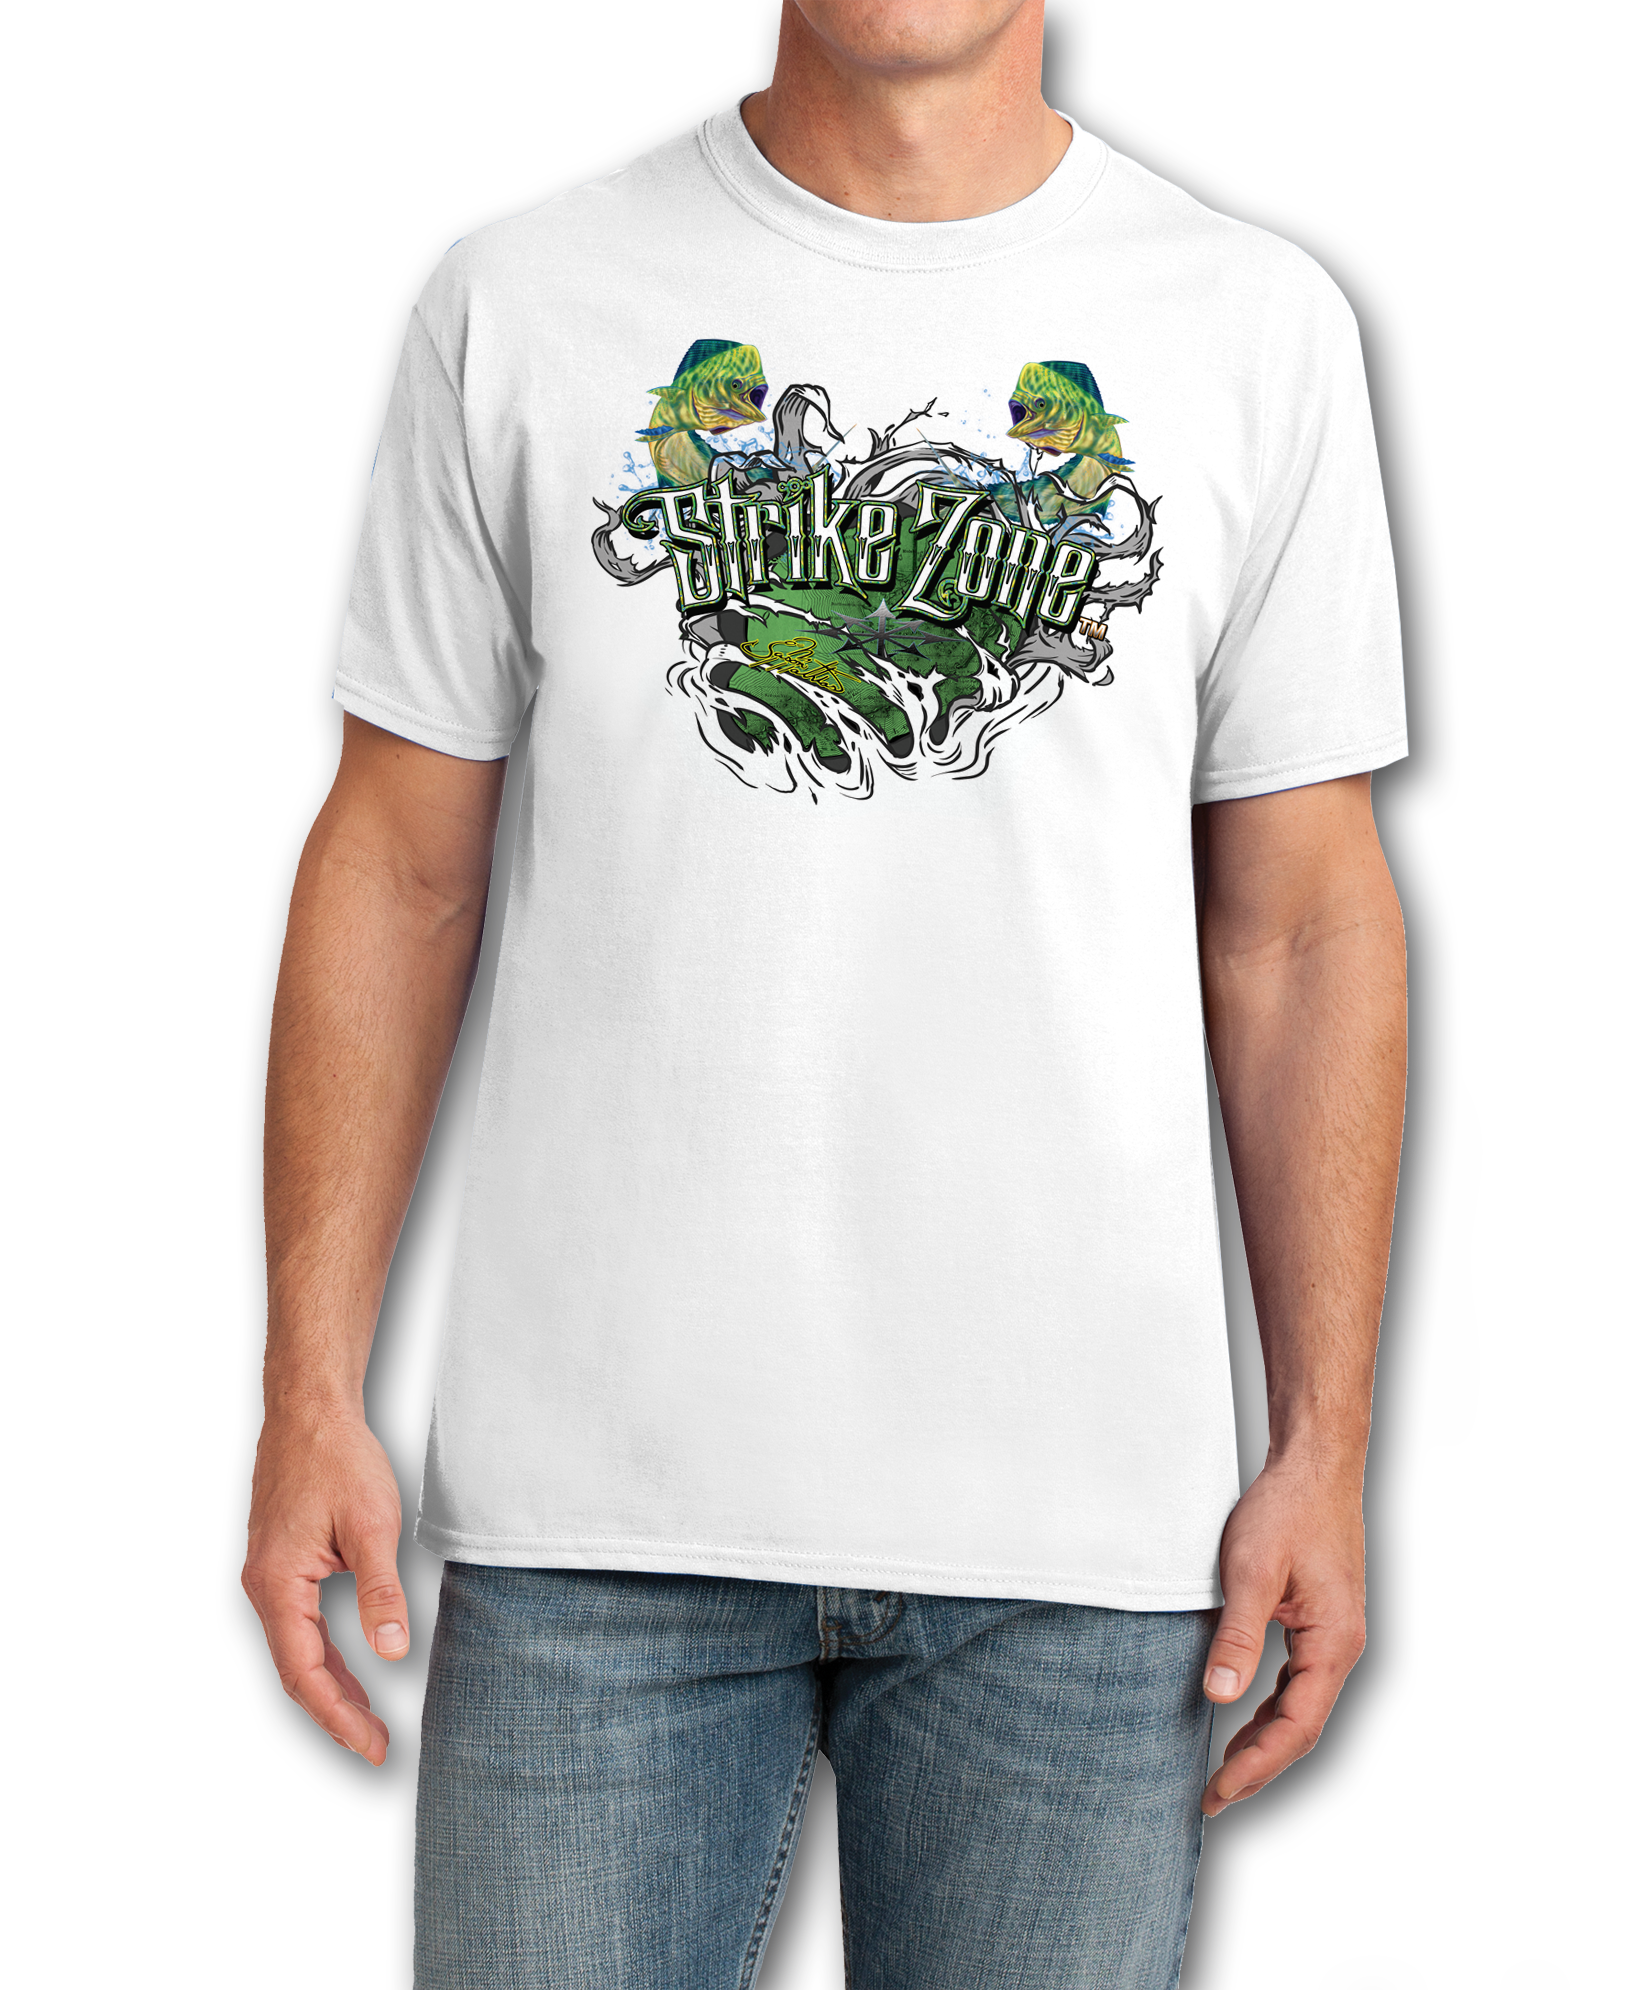 t-shirt-jason-mathias-cotton-white-mahi-dorado-dolphin-front-chest.png